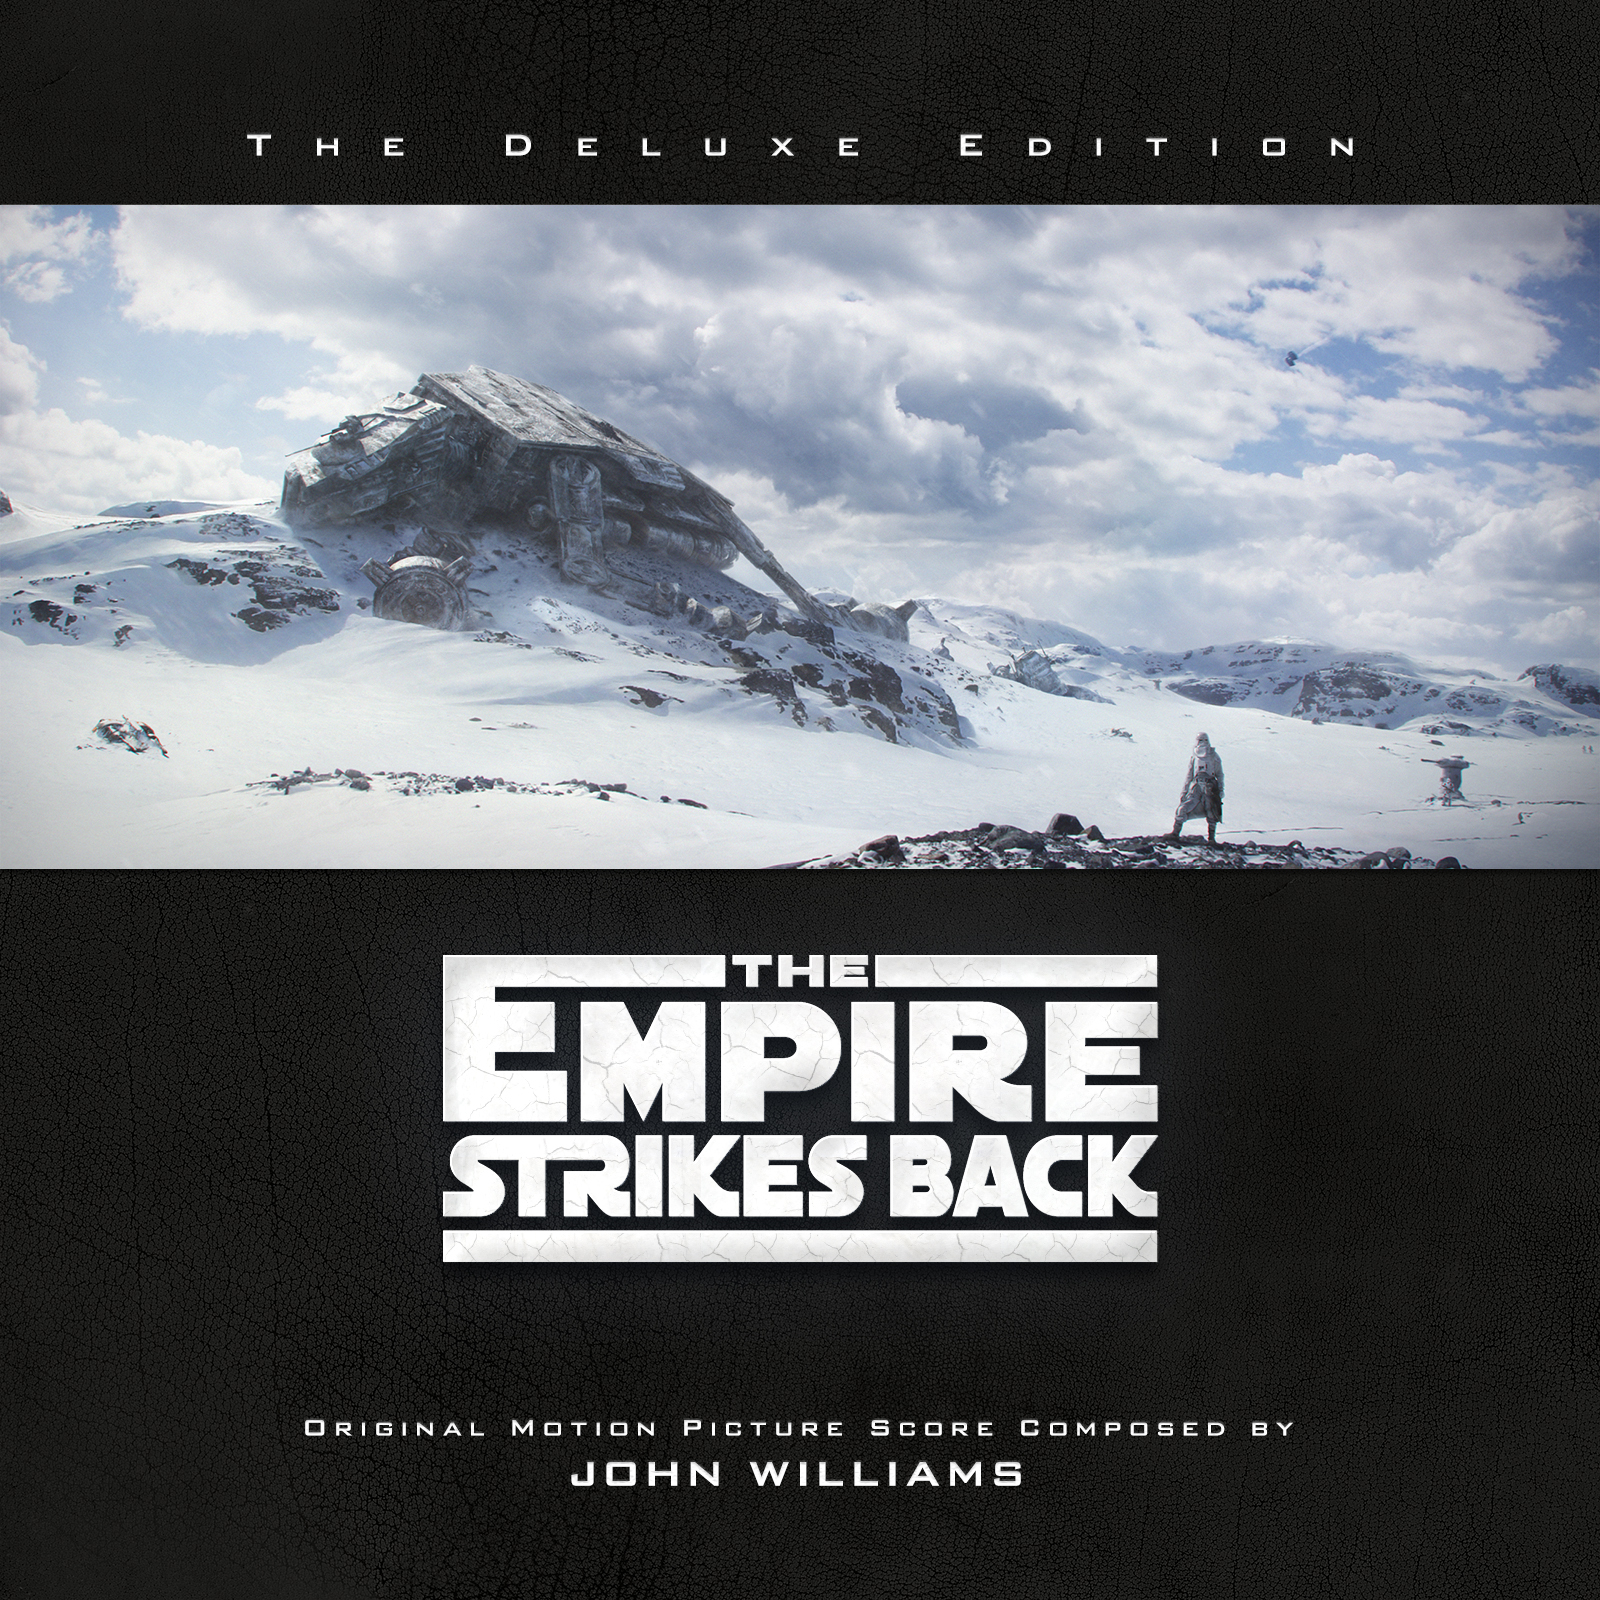 Star Wars Episode V The Empire Strikes Back The Deluxe Edition Hqcovers